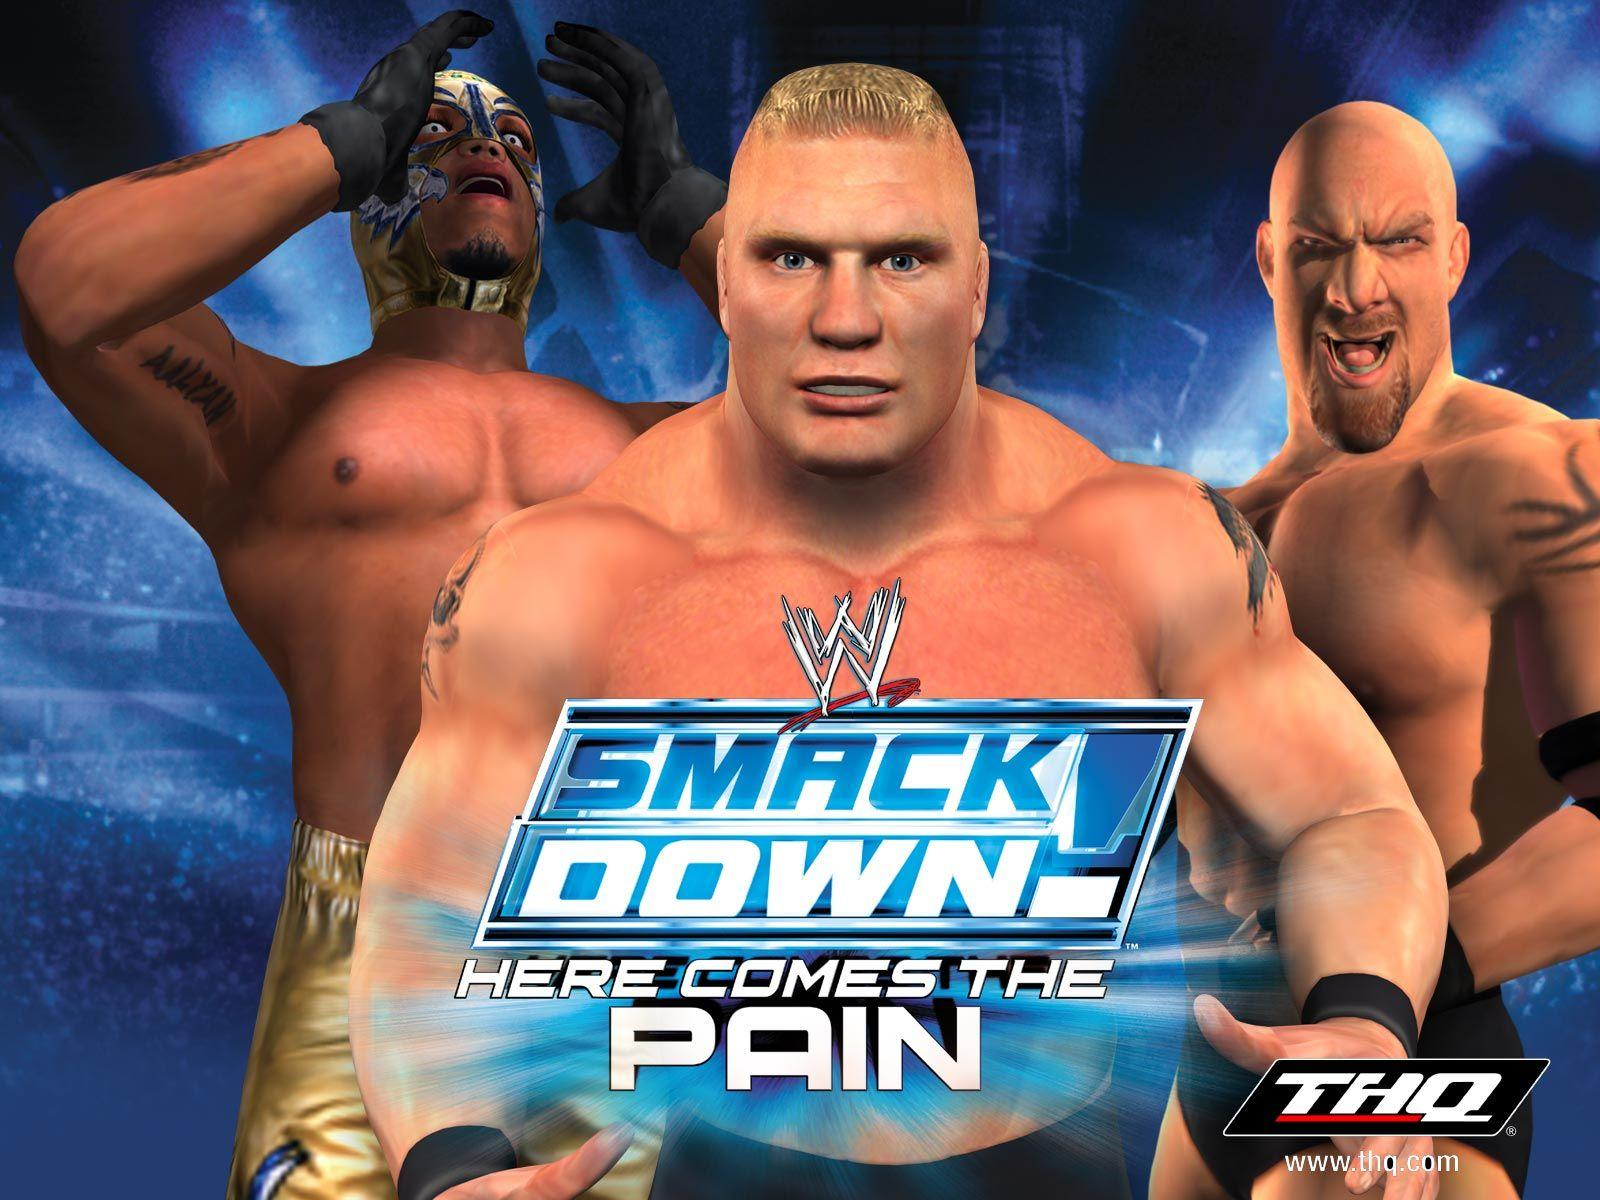 Wwe matches download free.